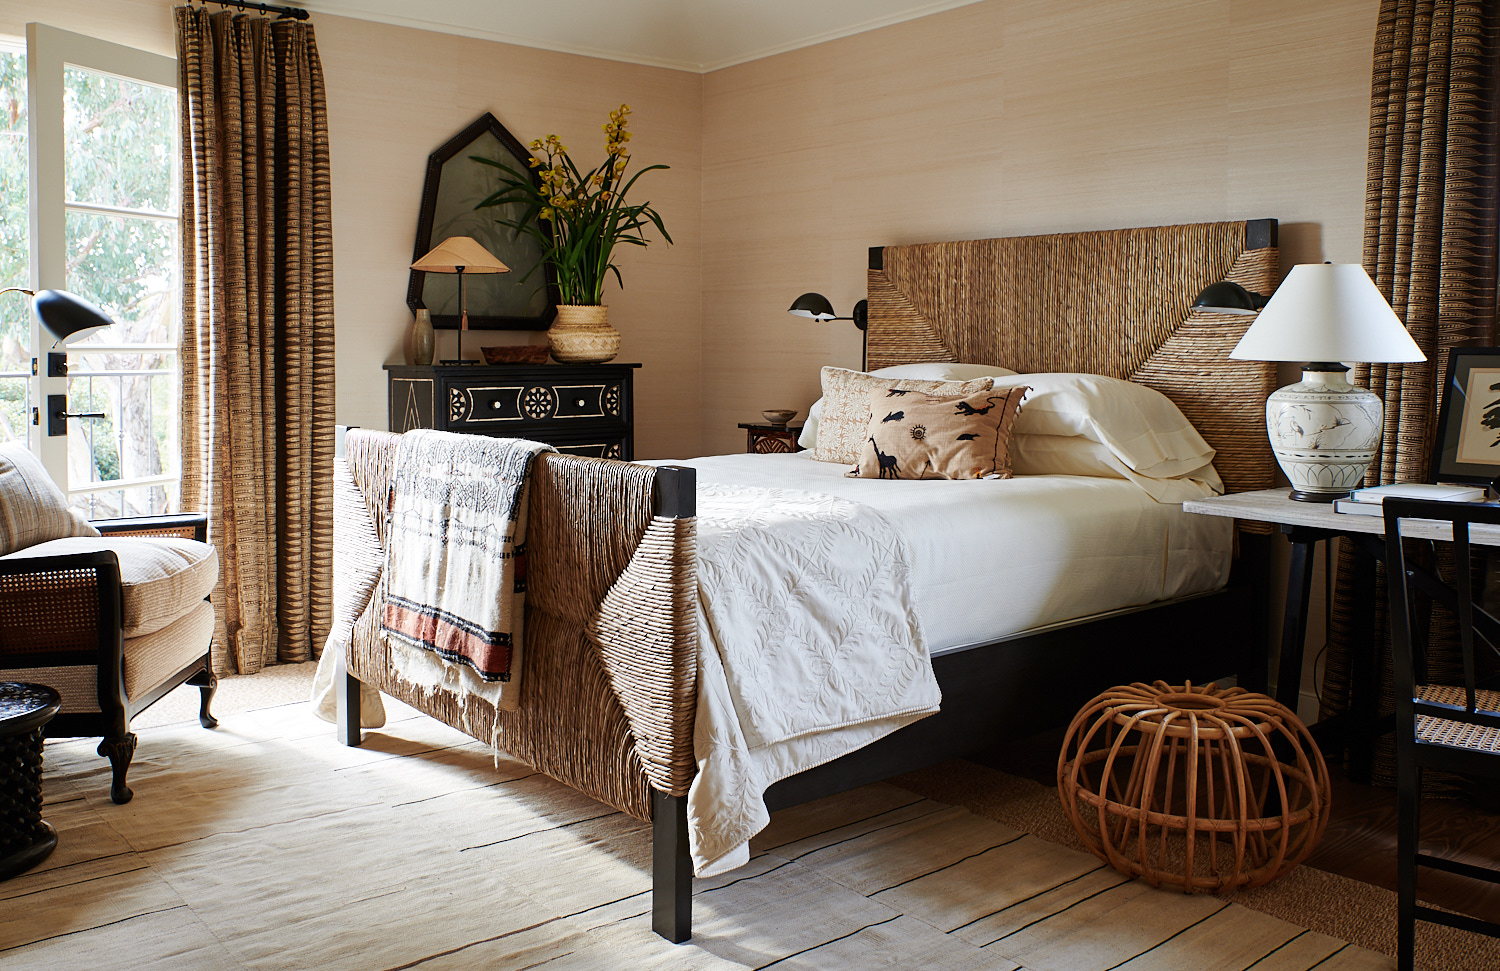 Wicker bed with custom pillows and tassels, upholstered wicker chair, and window drapes